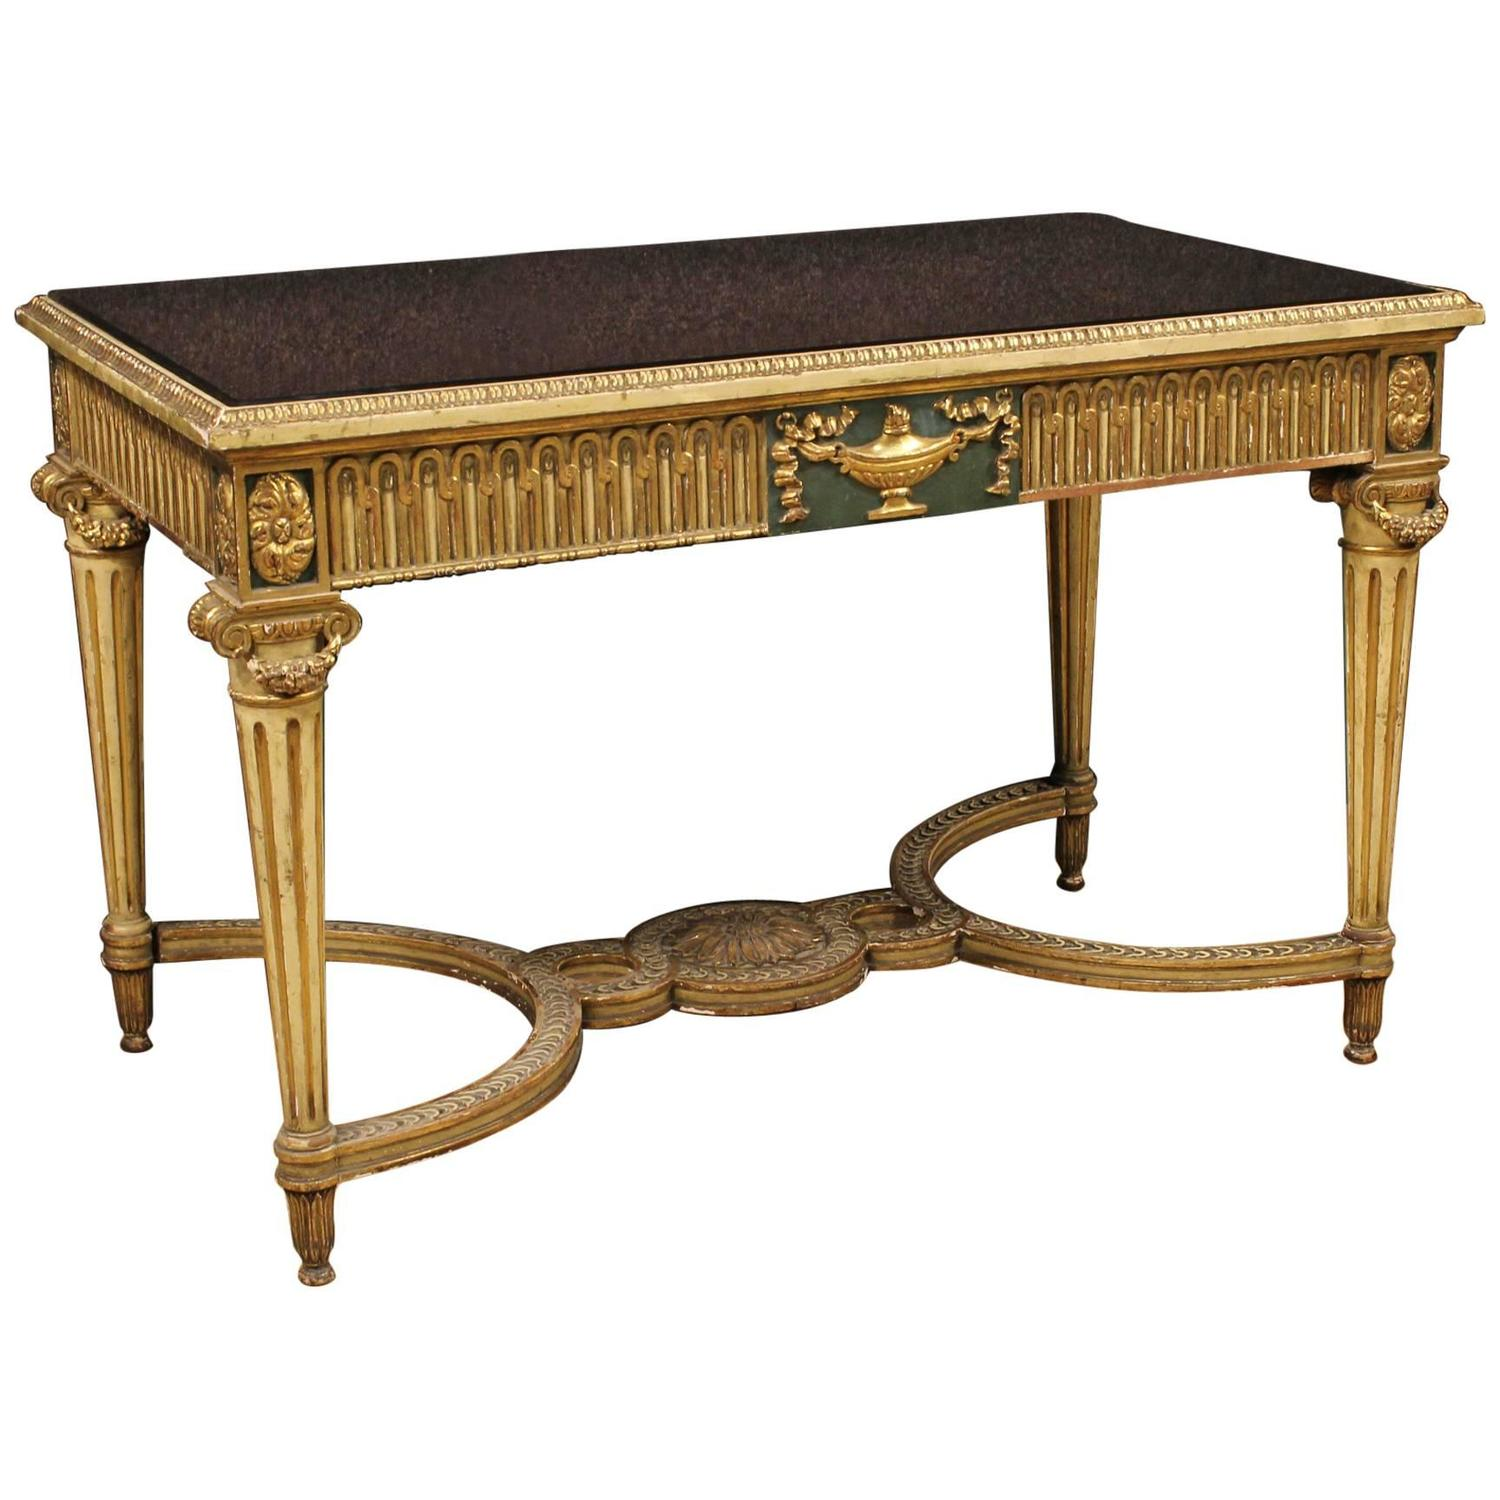 20th century italian coffee table in louis xvi style at 1stdibs Tuscan style coffee table